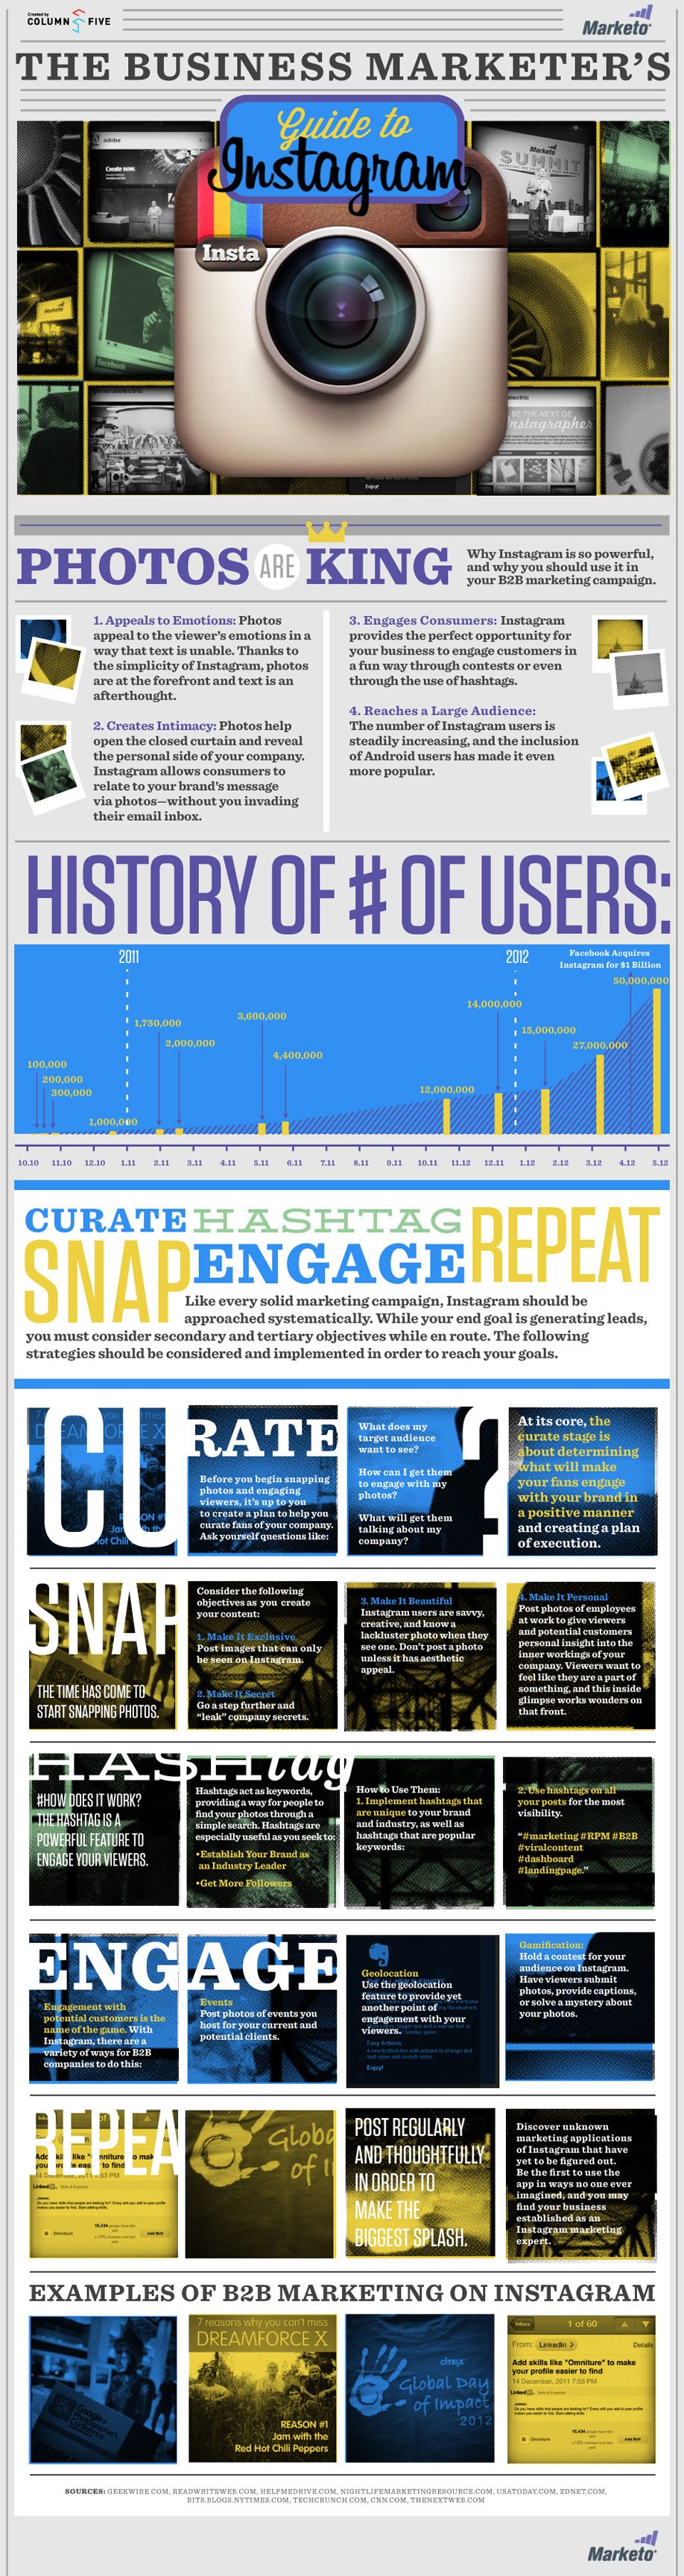 Marketer's-Guide-To-Instagram-infographic